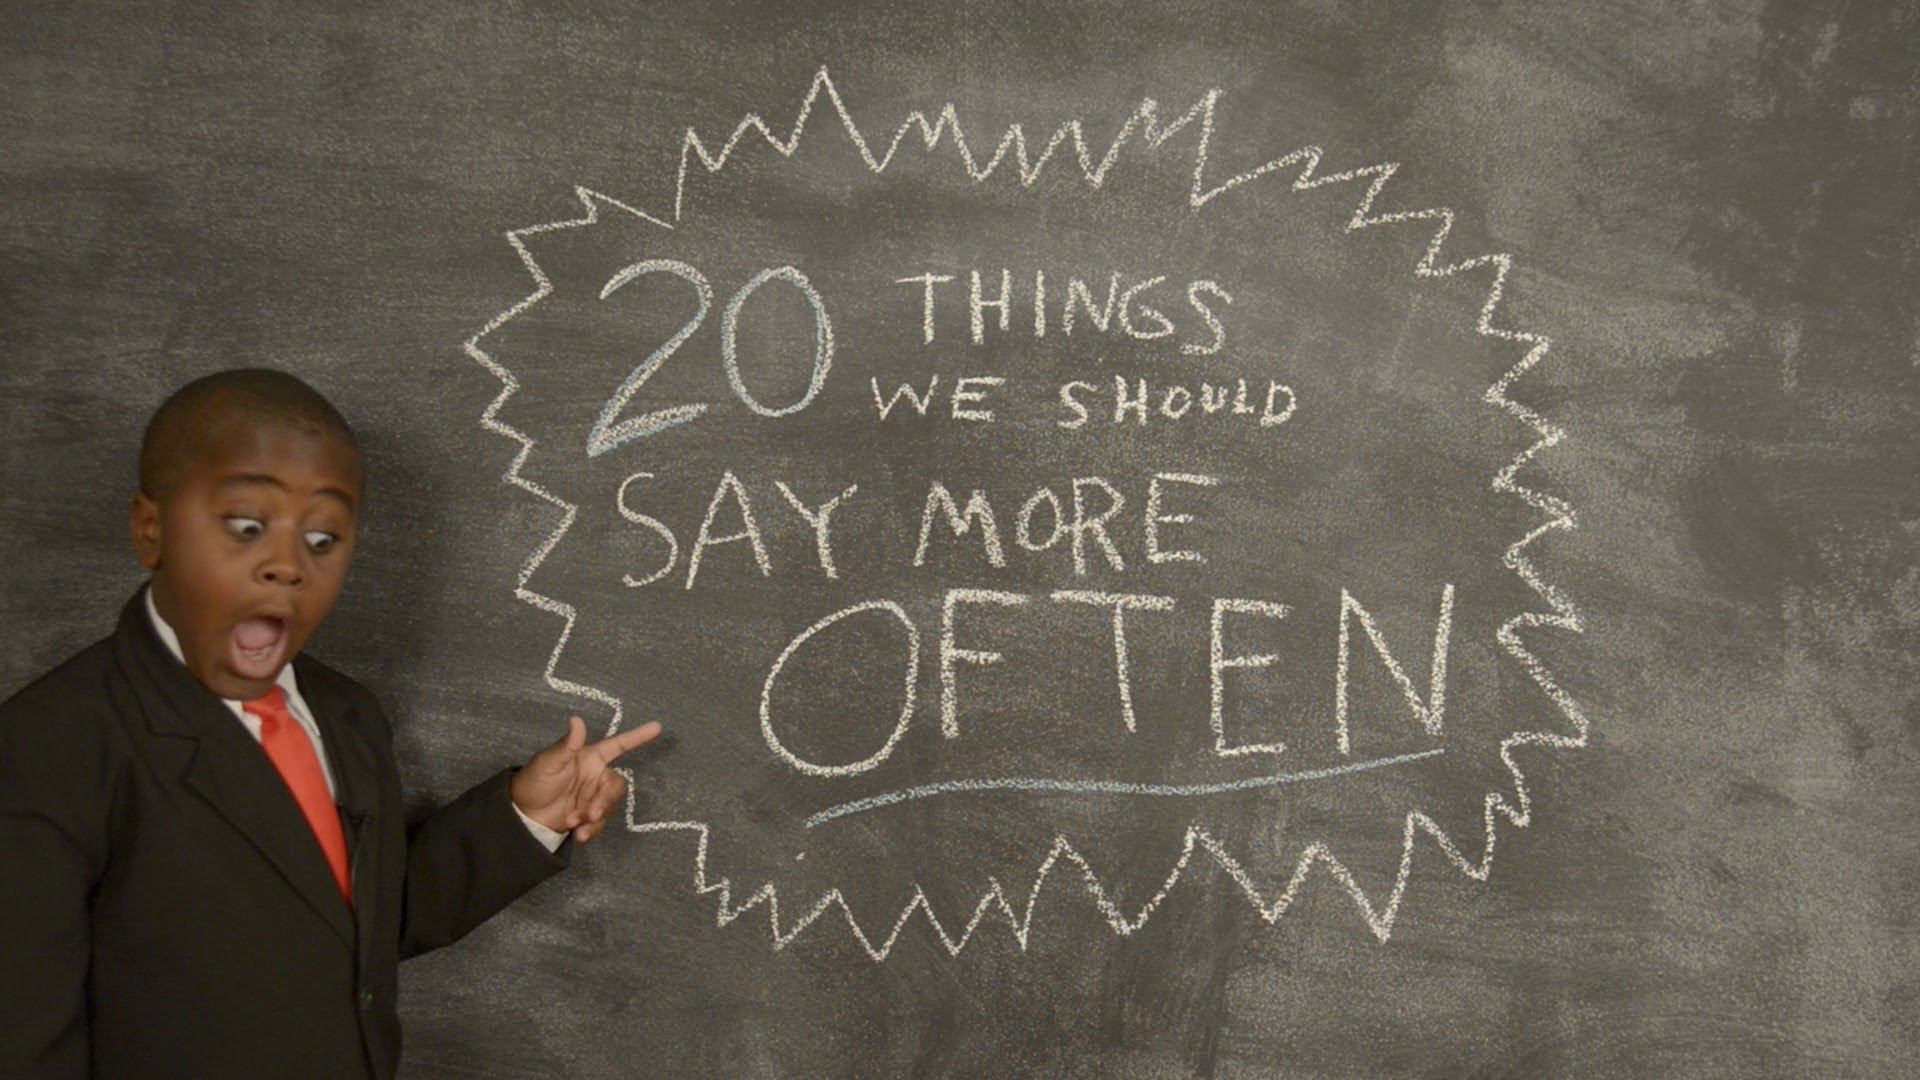 「二十句讓世界更美好的話」- Kid President's 20 Things We Should Say More Often